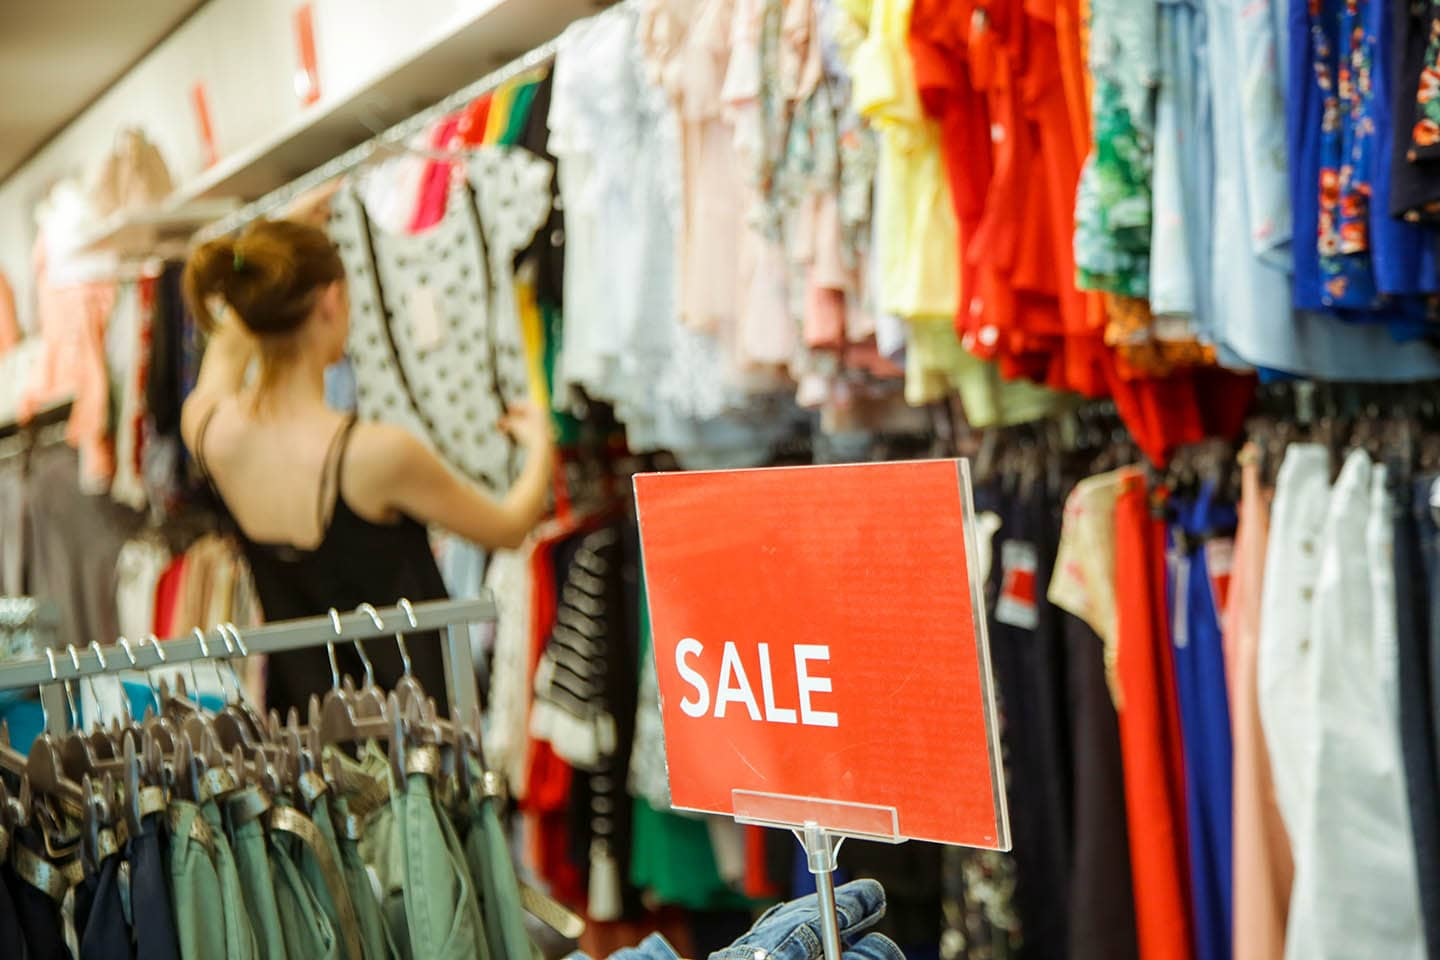 Retail sales clothing